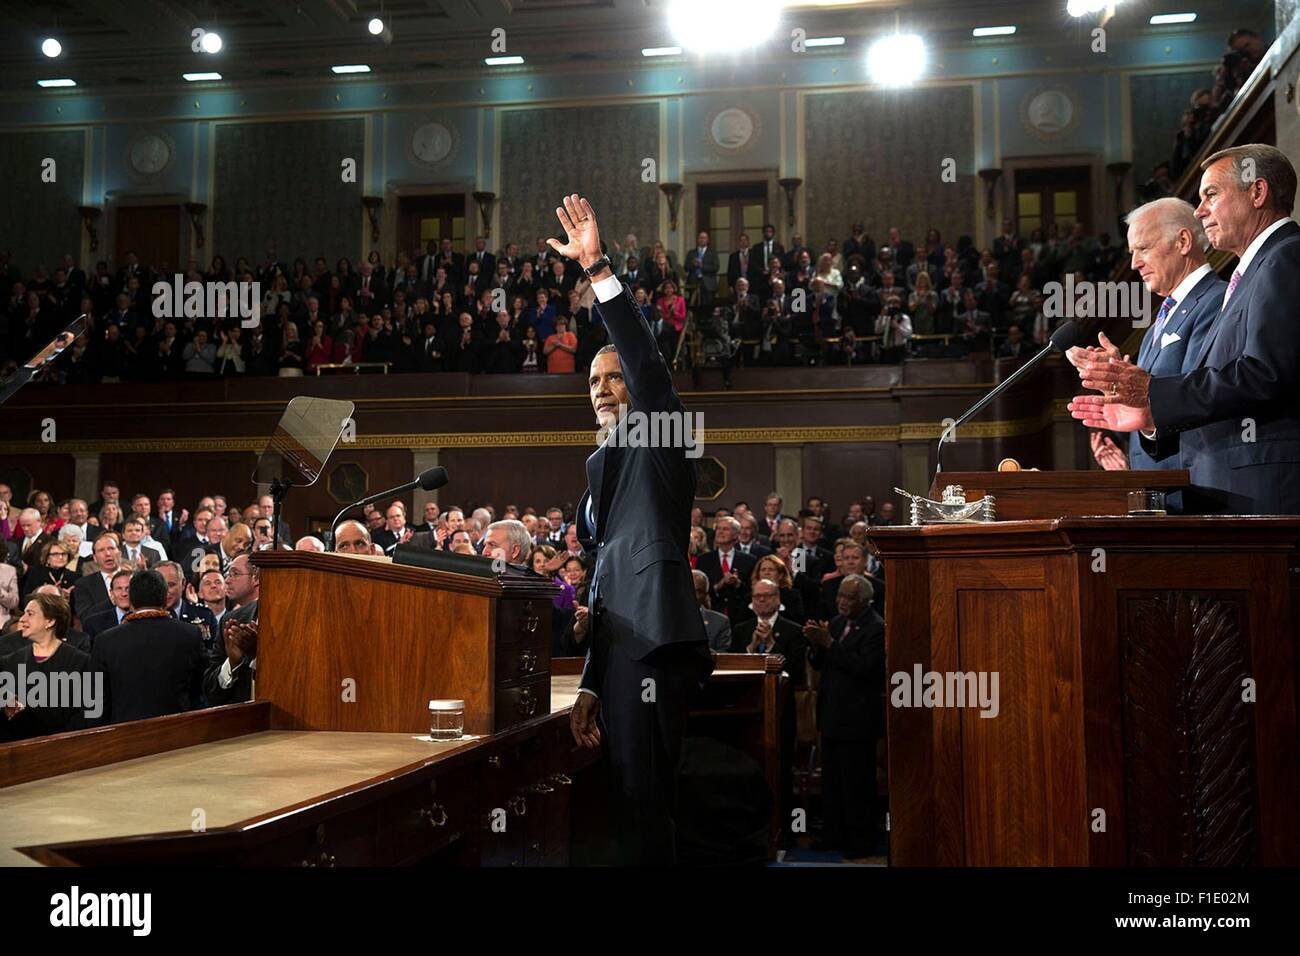 U.S. President Barack Obama acknowledges applause before he delivers the State of the Union address in the House - Stock Image